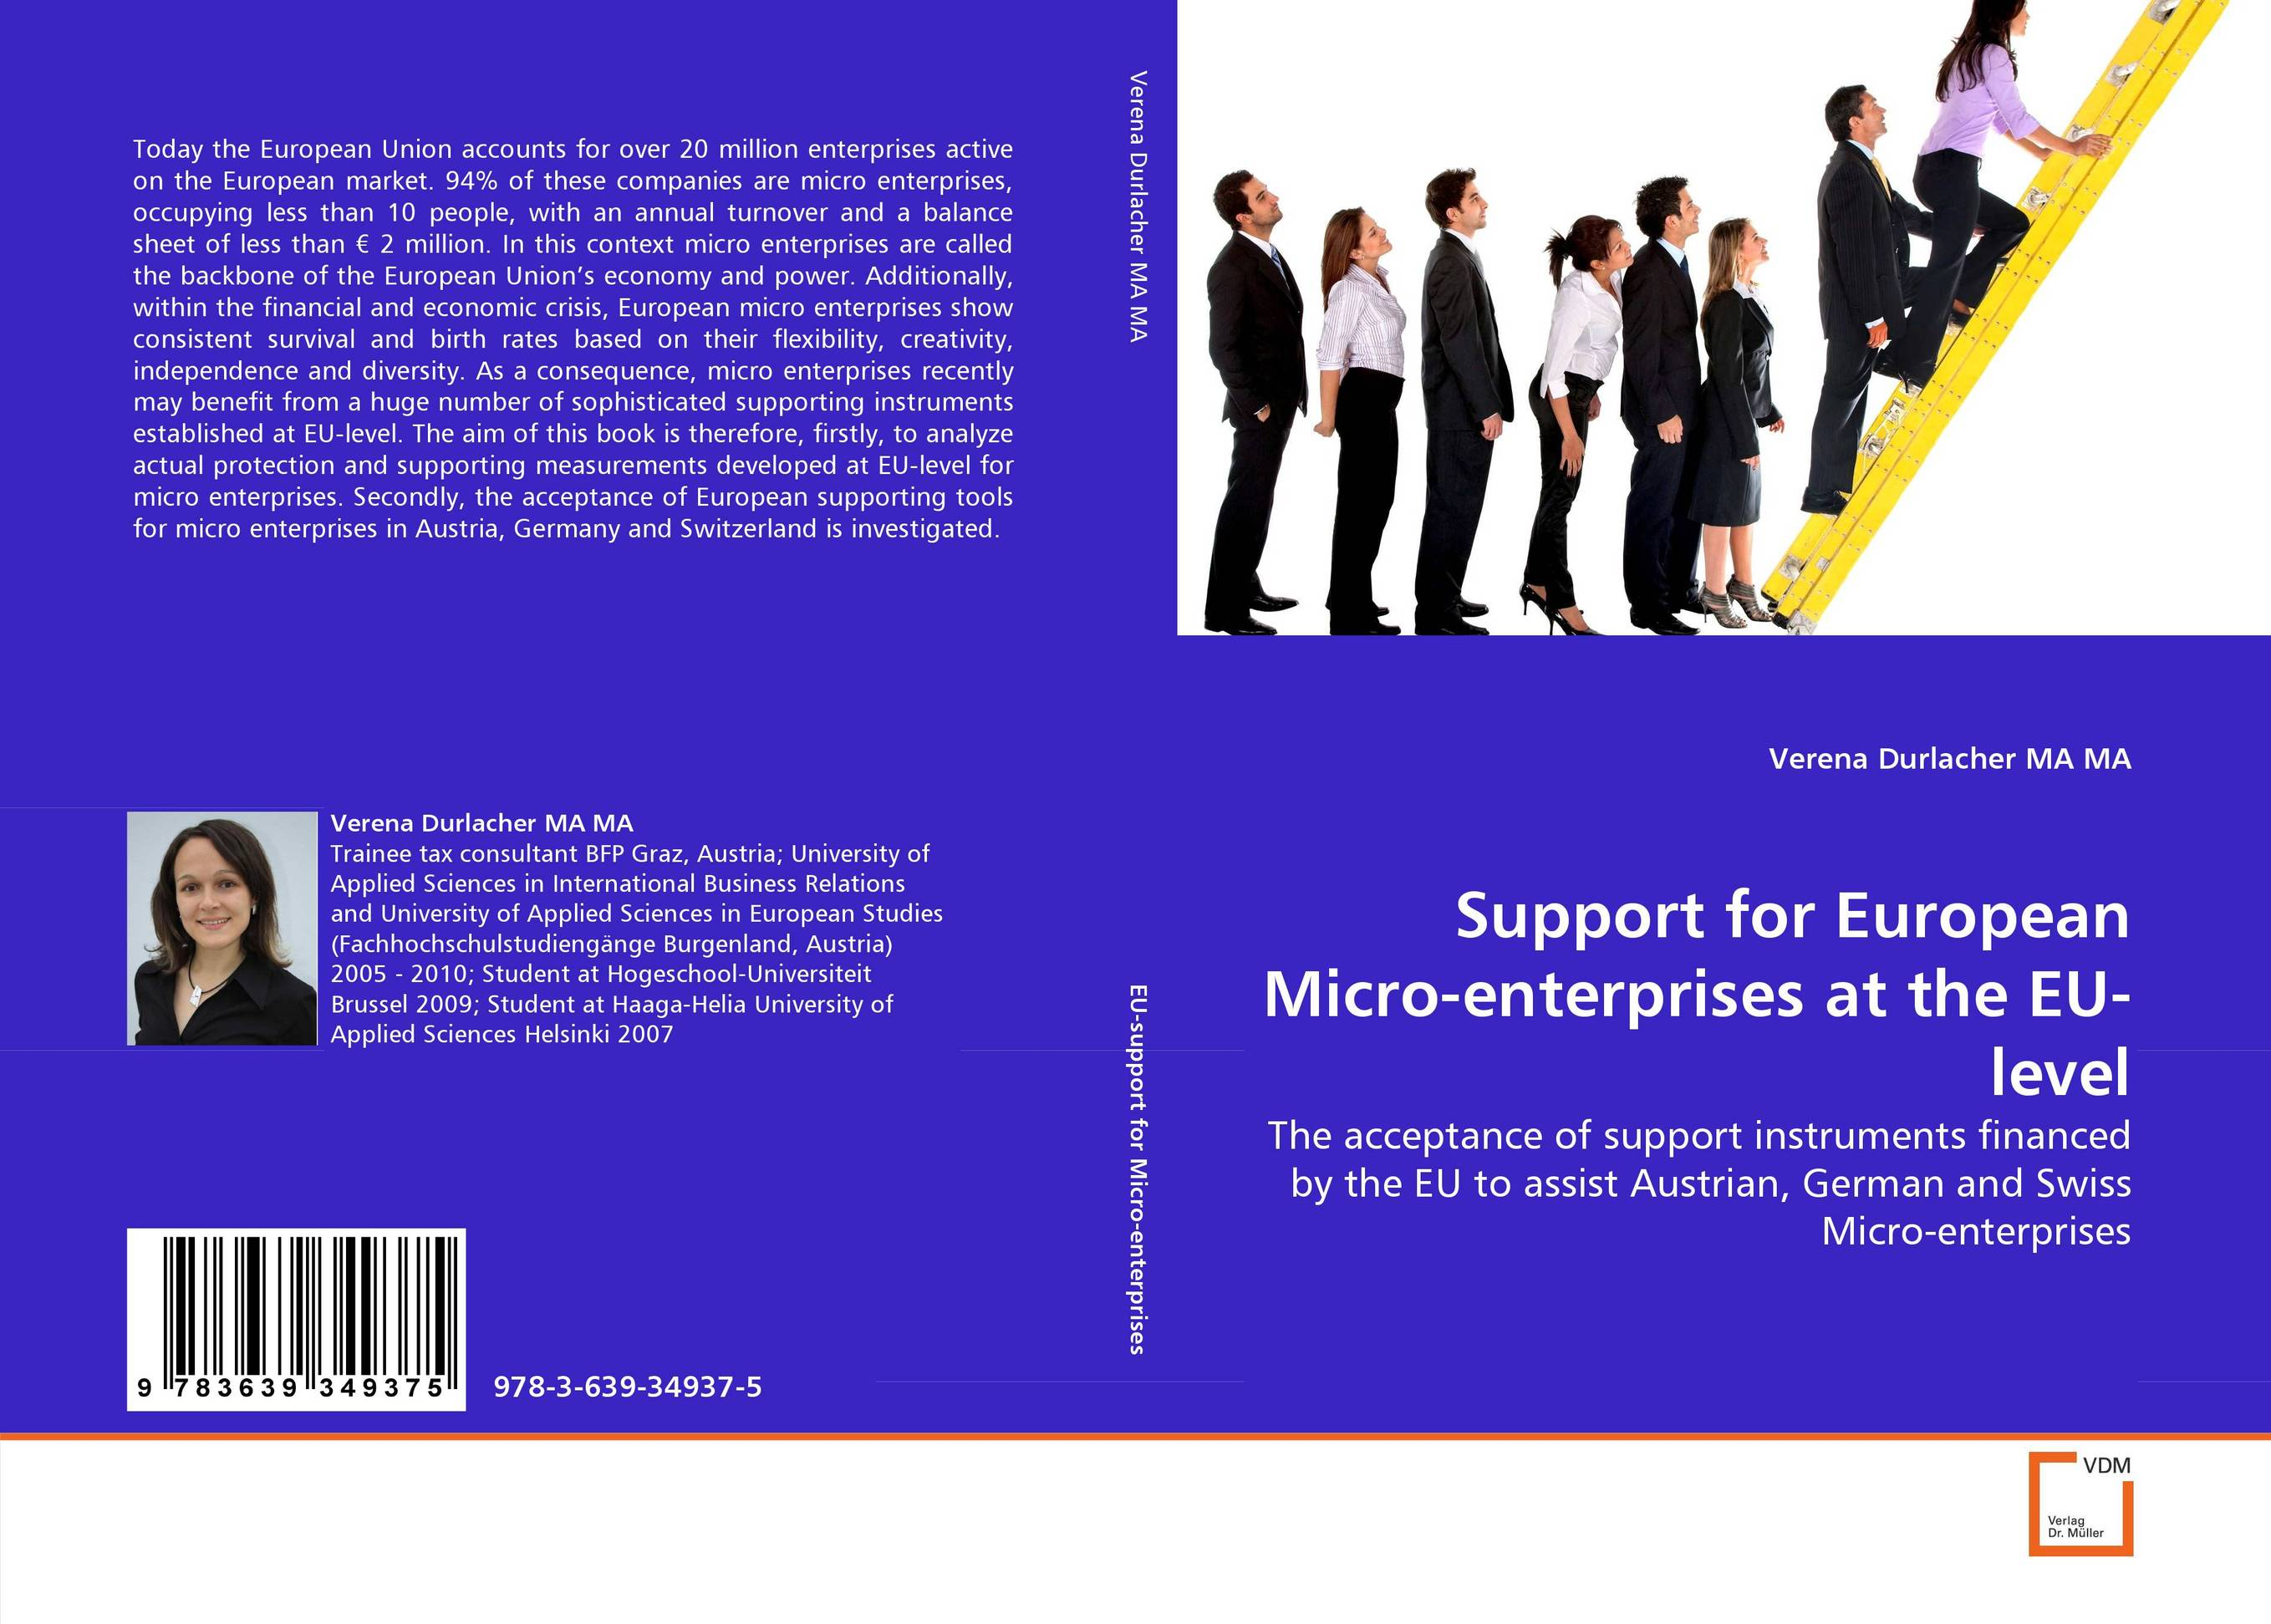 Support for European Micro-enterprises at the EU-level impact of micro enterprises on plant diversity and rural livelihood